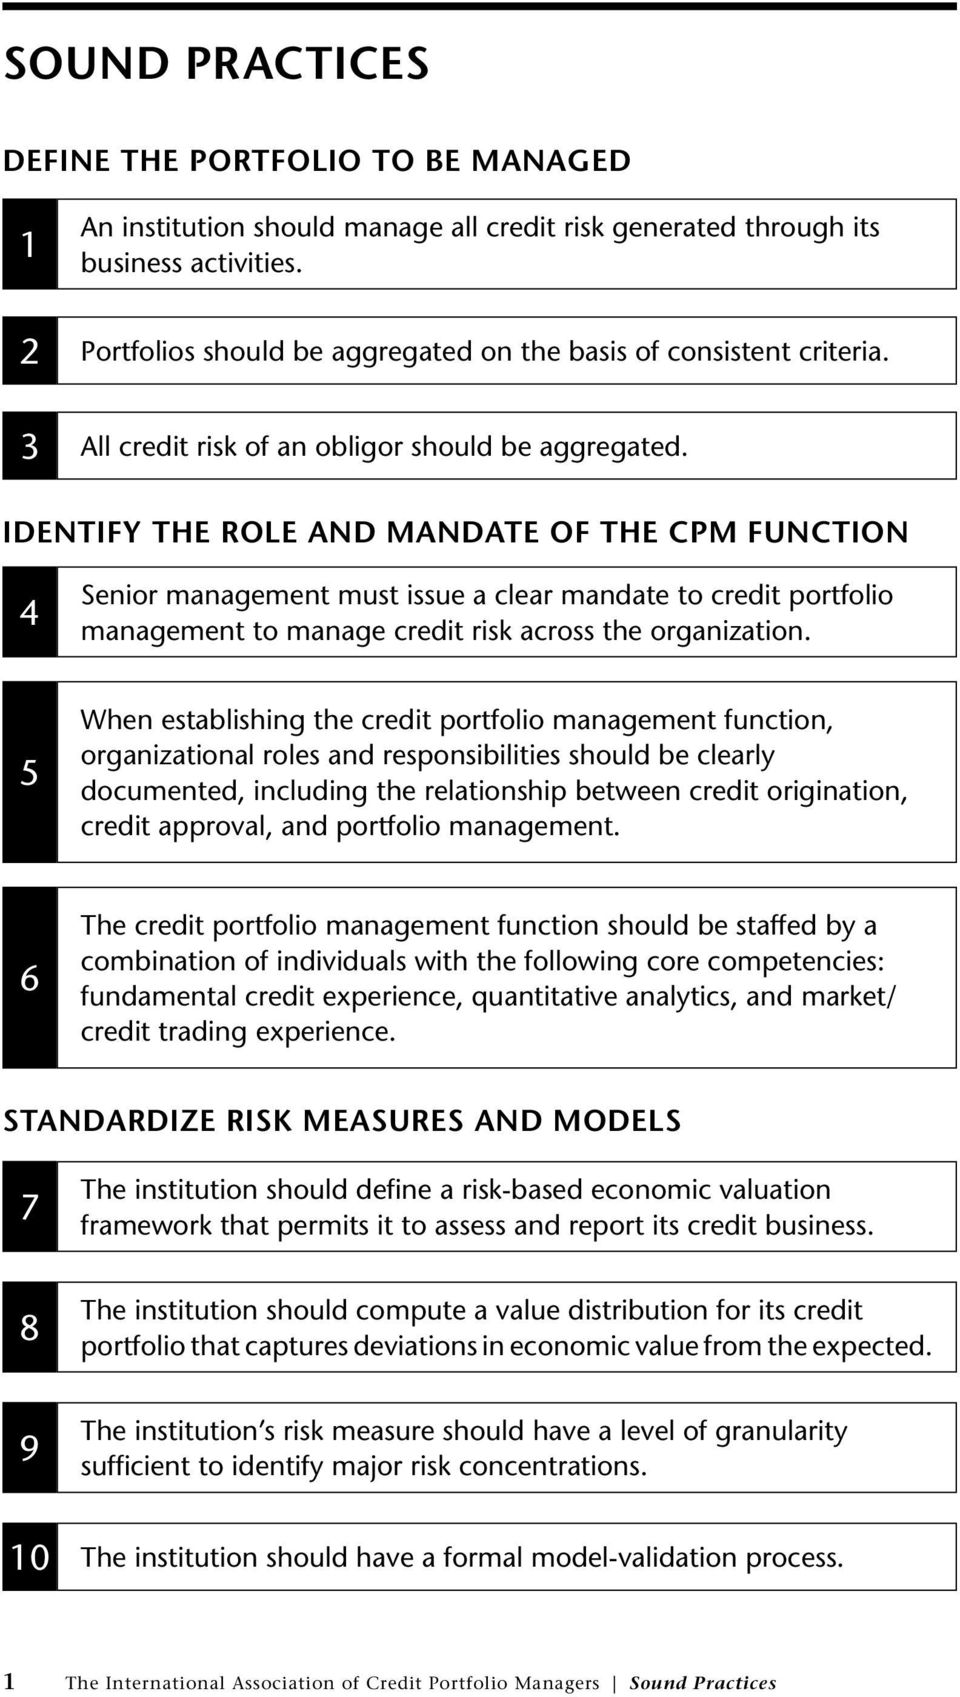 Identify the Role and Mandate of the CPM Function 4 Senior management must issue a clear mandate to credit portfolio management to manage credit risk across the organization.